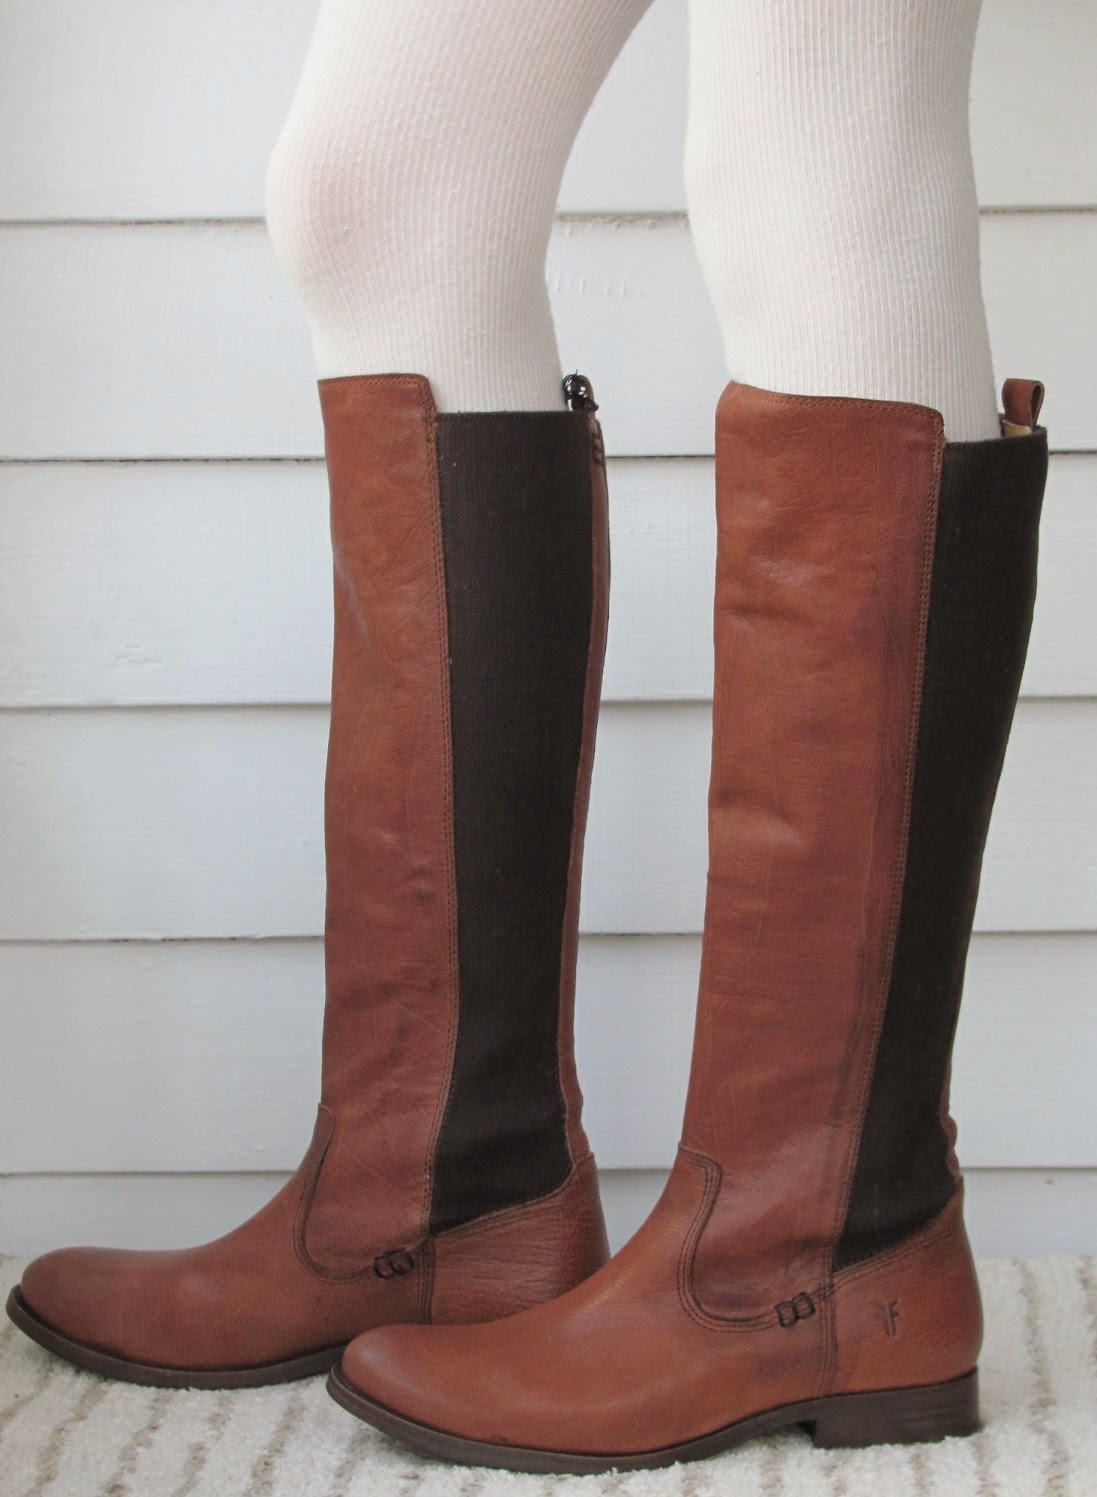 Howdy Slim! Riding Boots for Thin Calves: February 2015